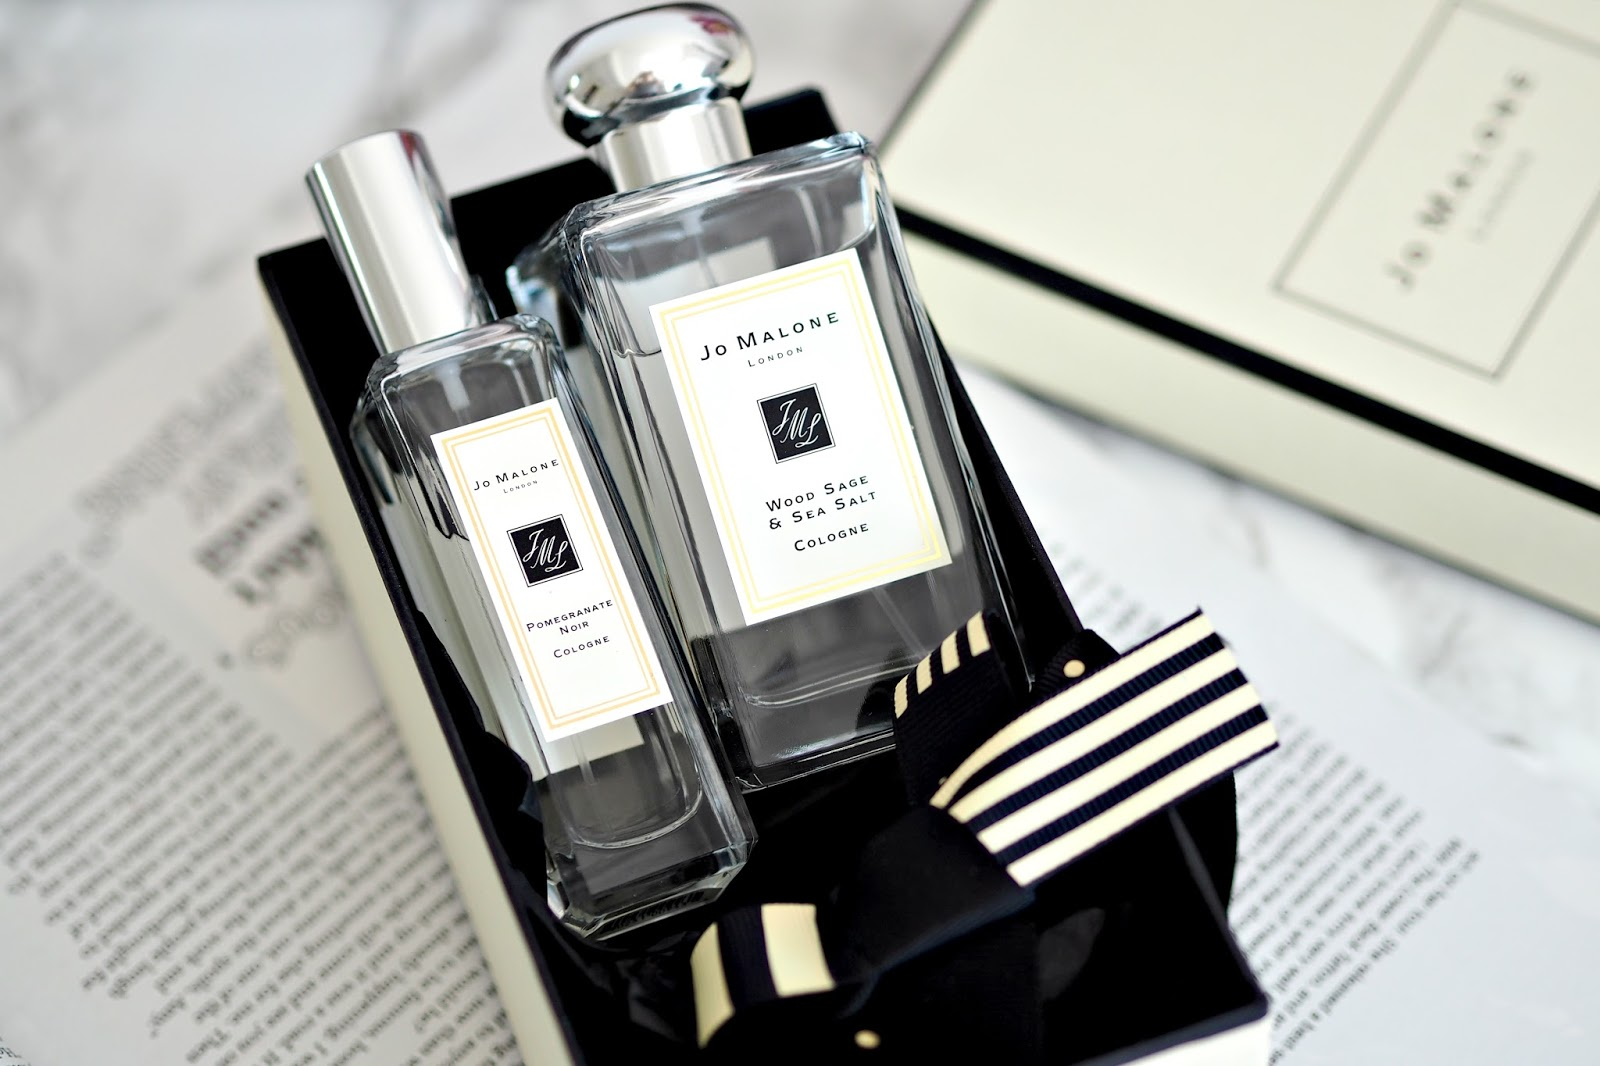 Jo Malone Wood Sage & Sea Salt and Pomegranate Noir at duty free gatwick